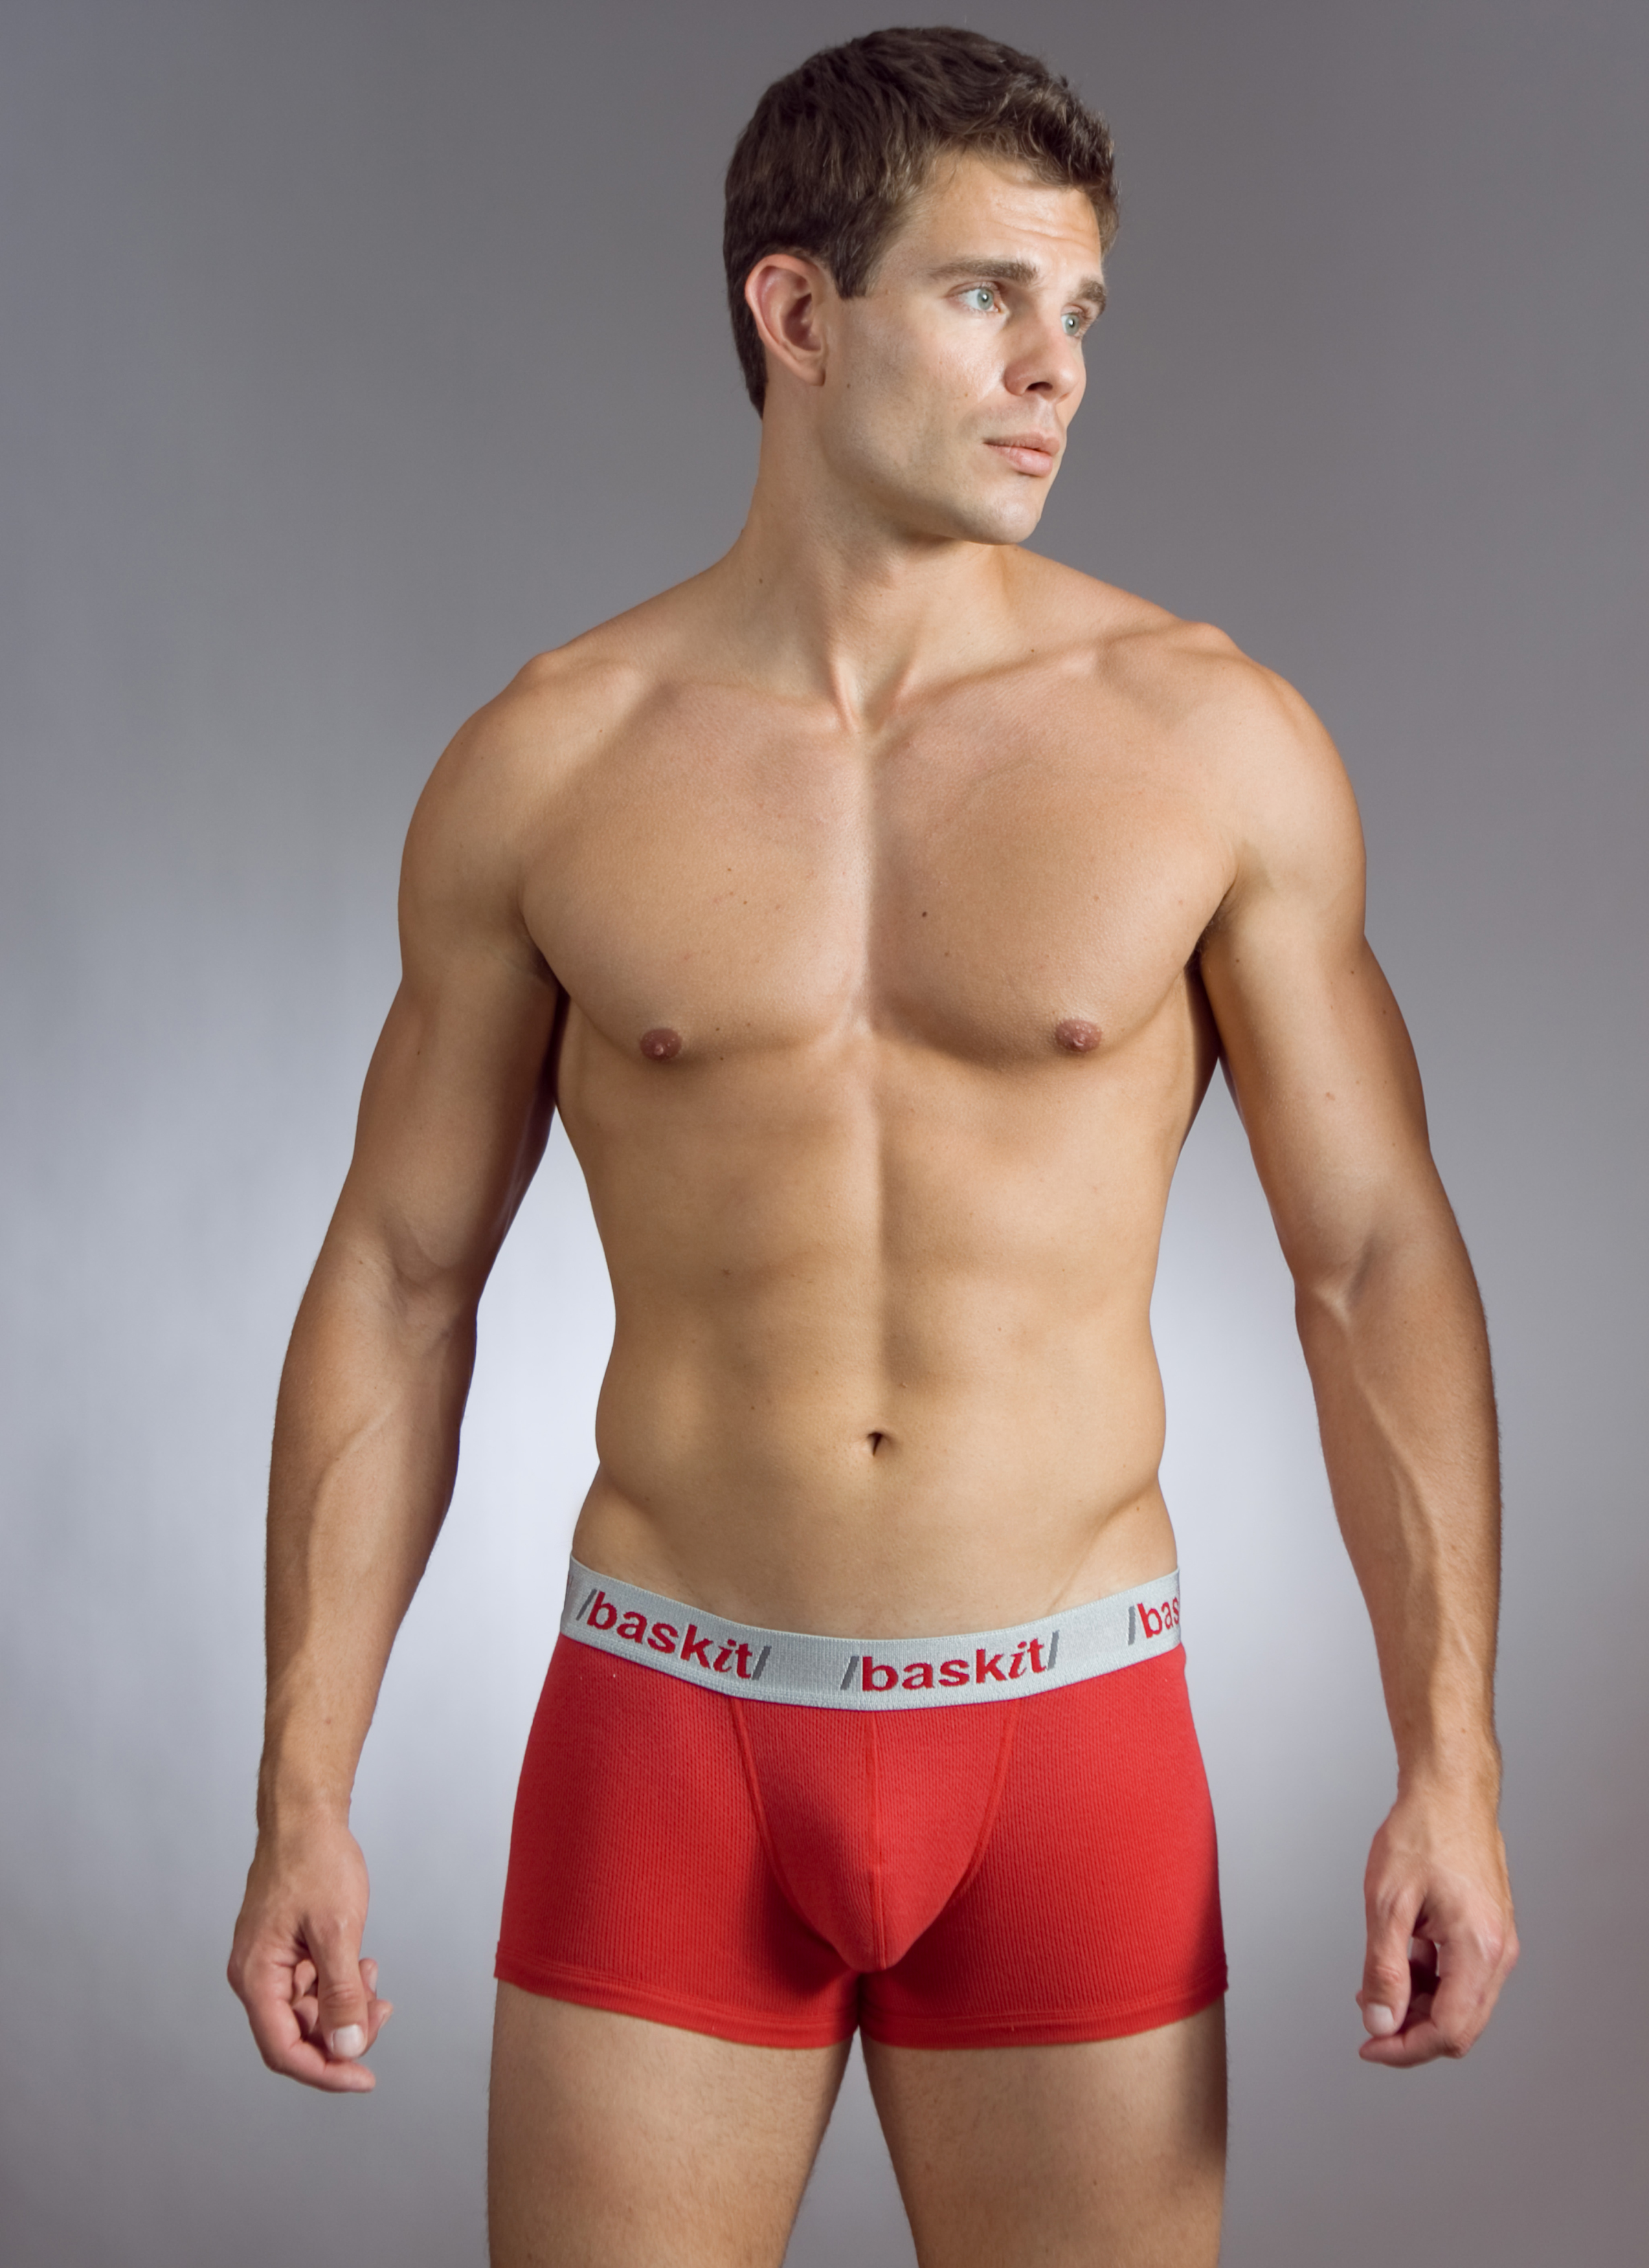 Men's Underwear from hereffil53.cf Whether you're searching for a pack of classic briefs or a specific color or fit of boxers, hereffil53.cf offers a wide range of comfortable, classic, and can't-go-wrong underwear for men.